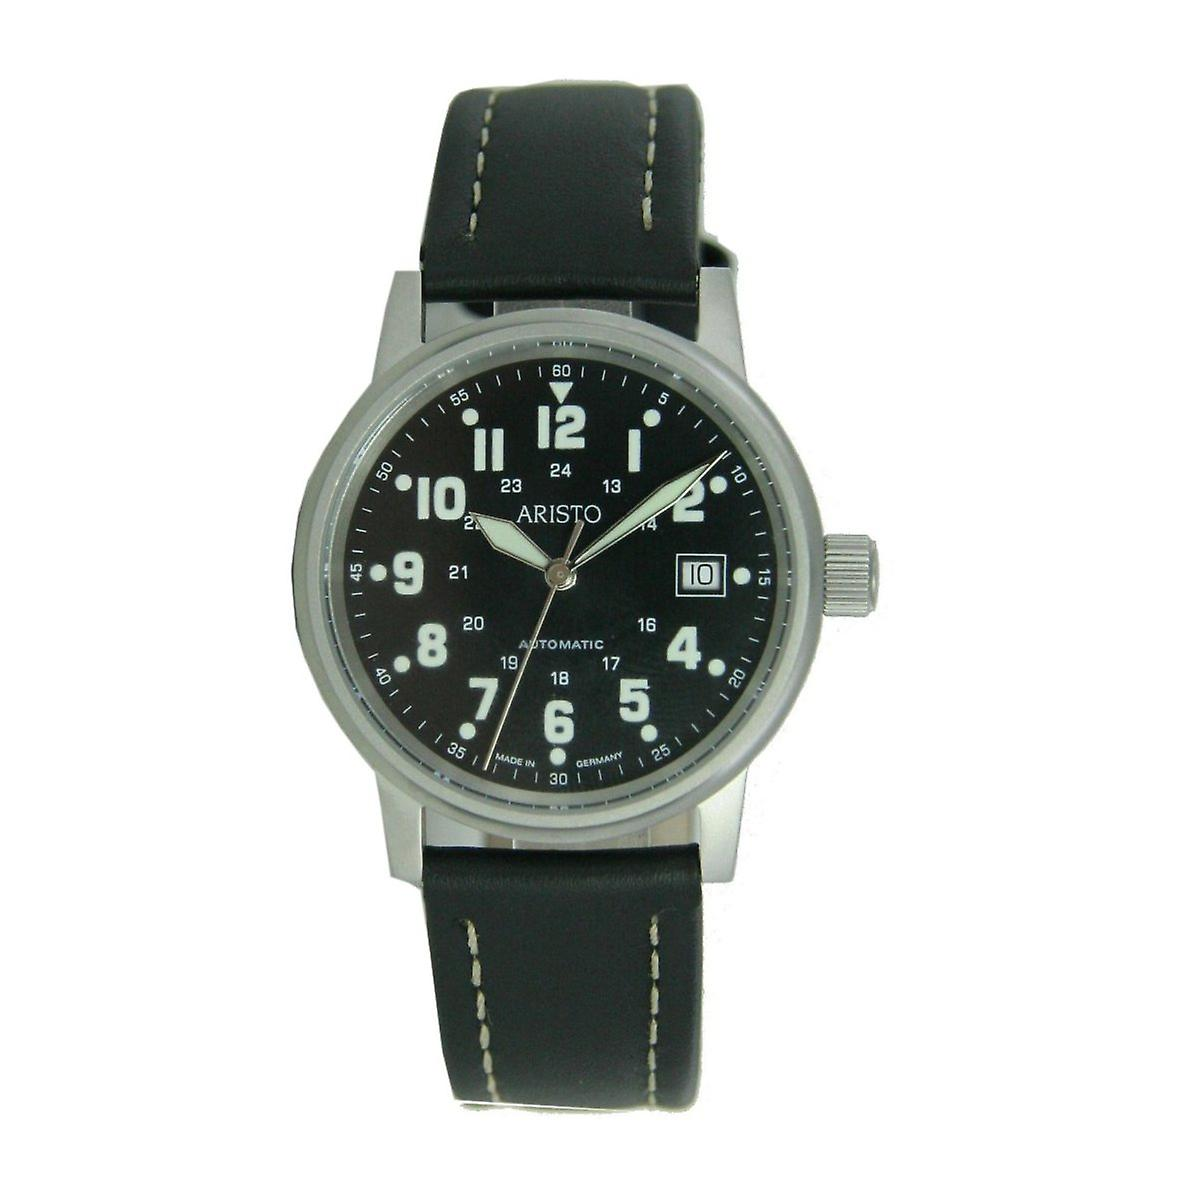 Aristo mens watch wristwatch pilot's watch automatic leather 3 H 11